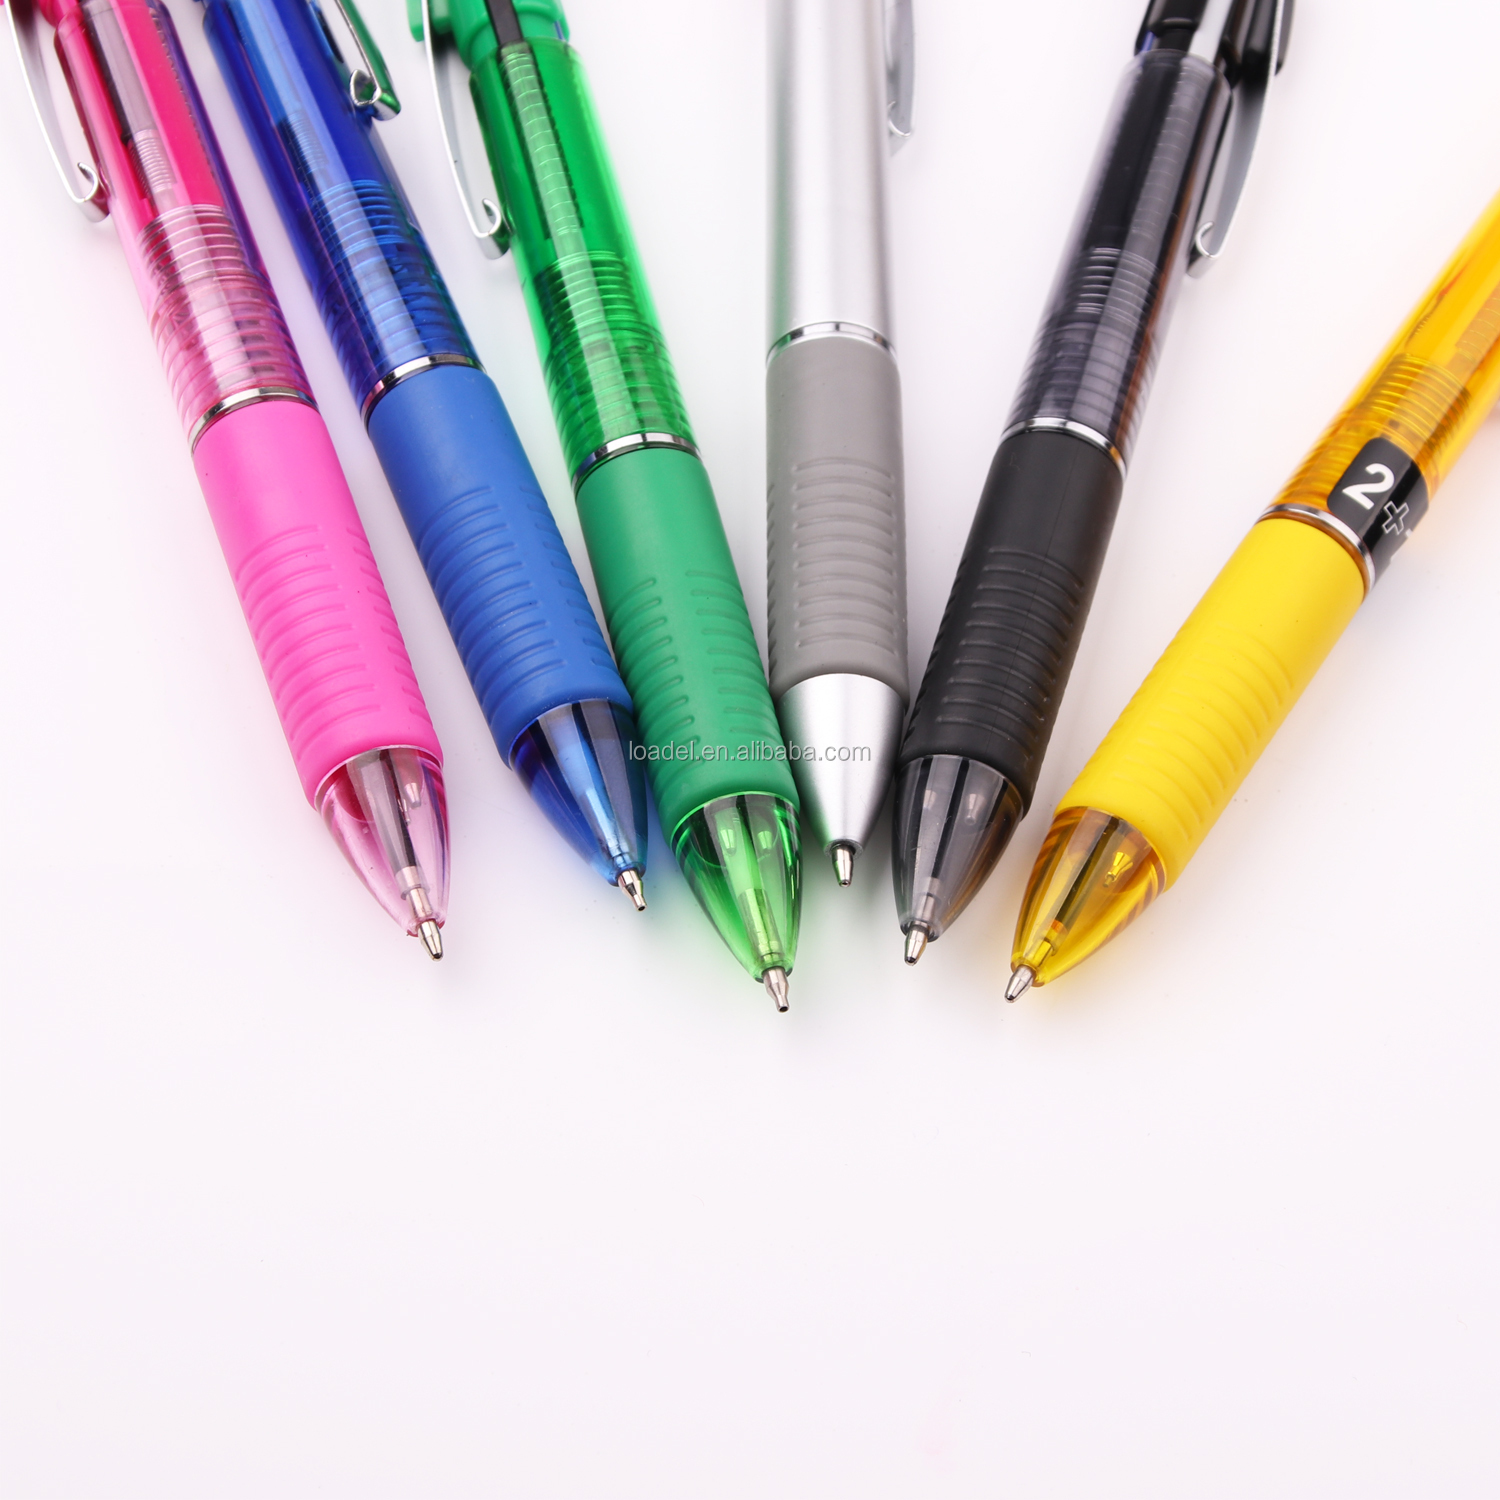 High quality multifunction pen pencil 2 in 1 pen with pencil